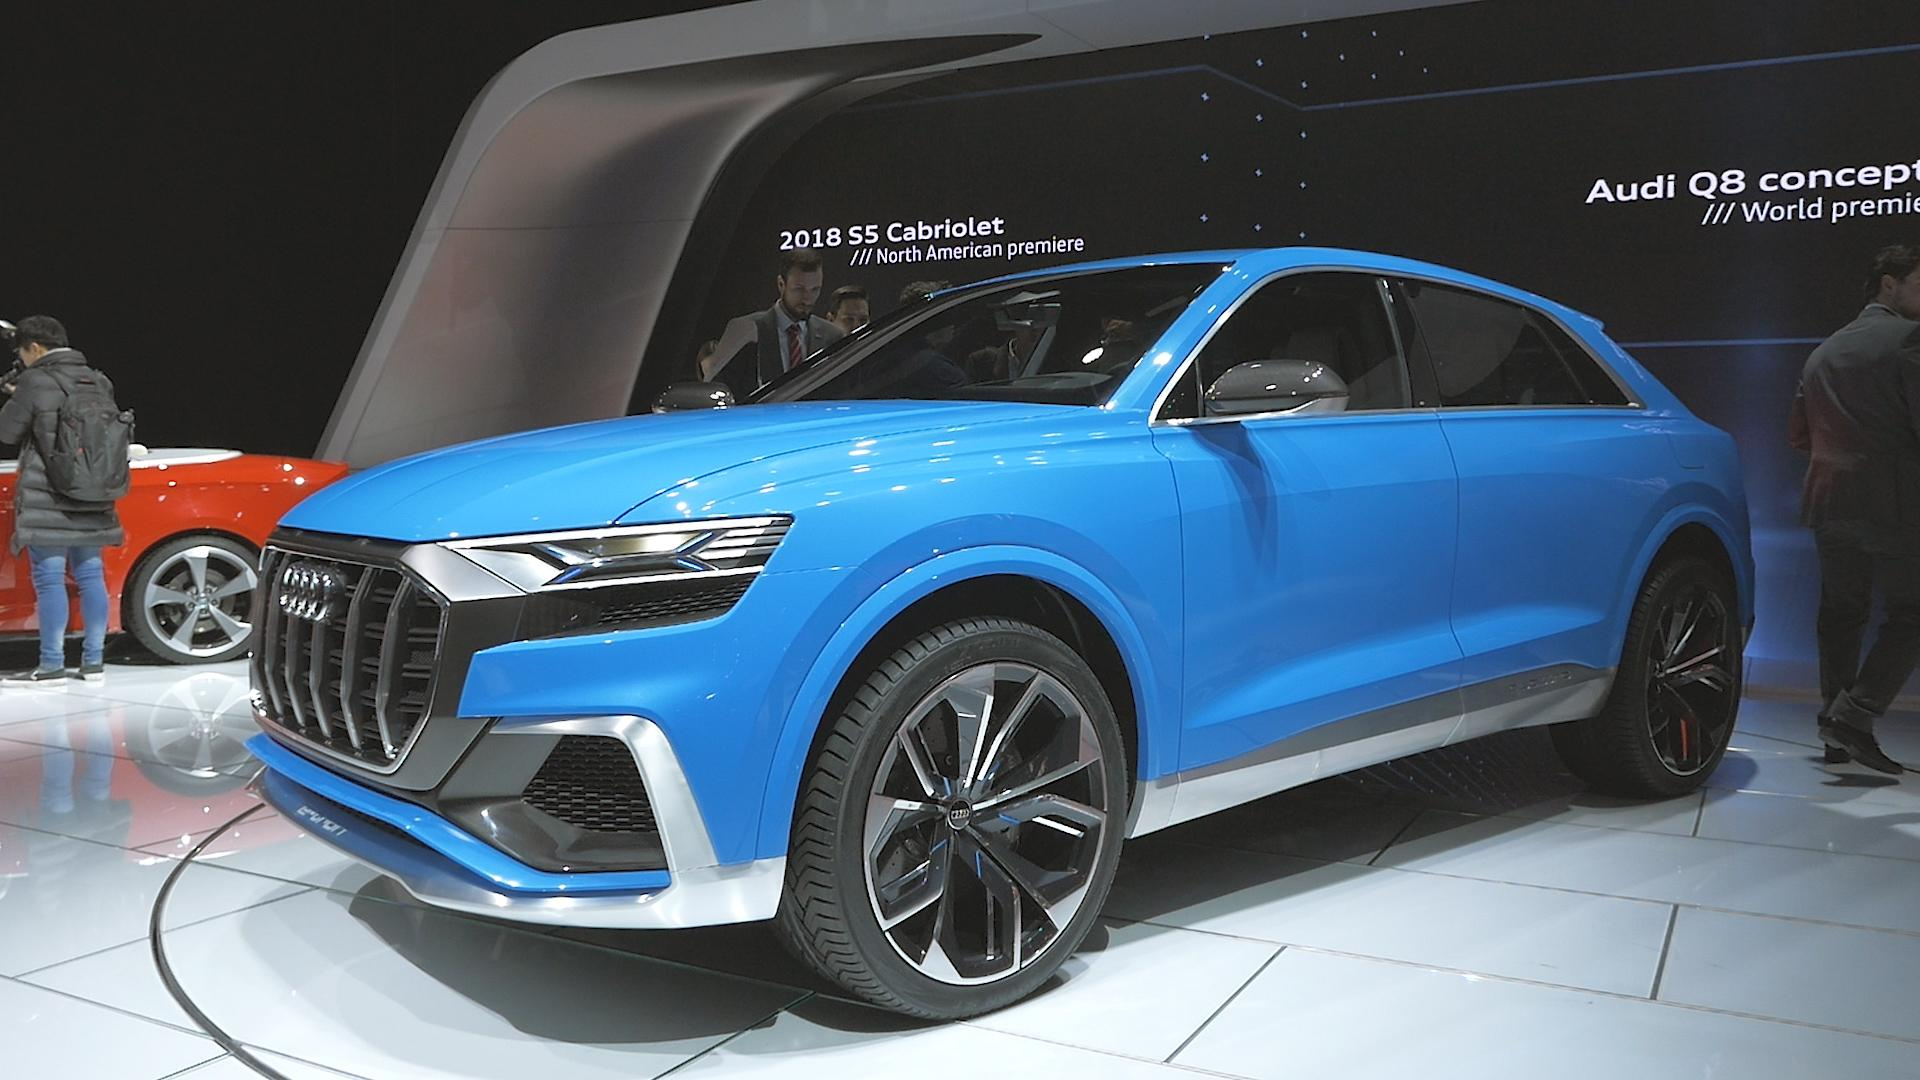 Audi's Q8 Sport concept packs an electric supercharger - Autoblog